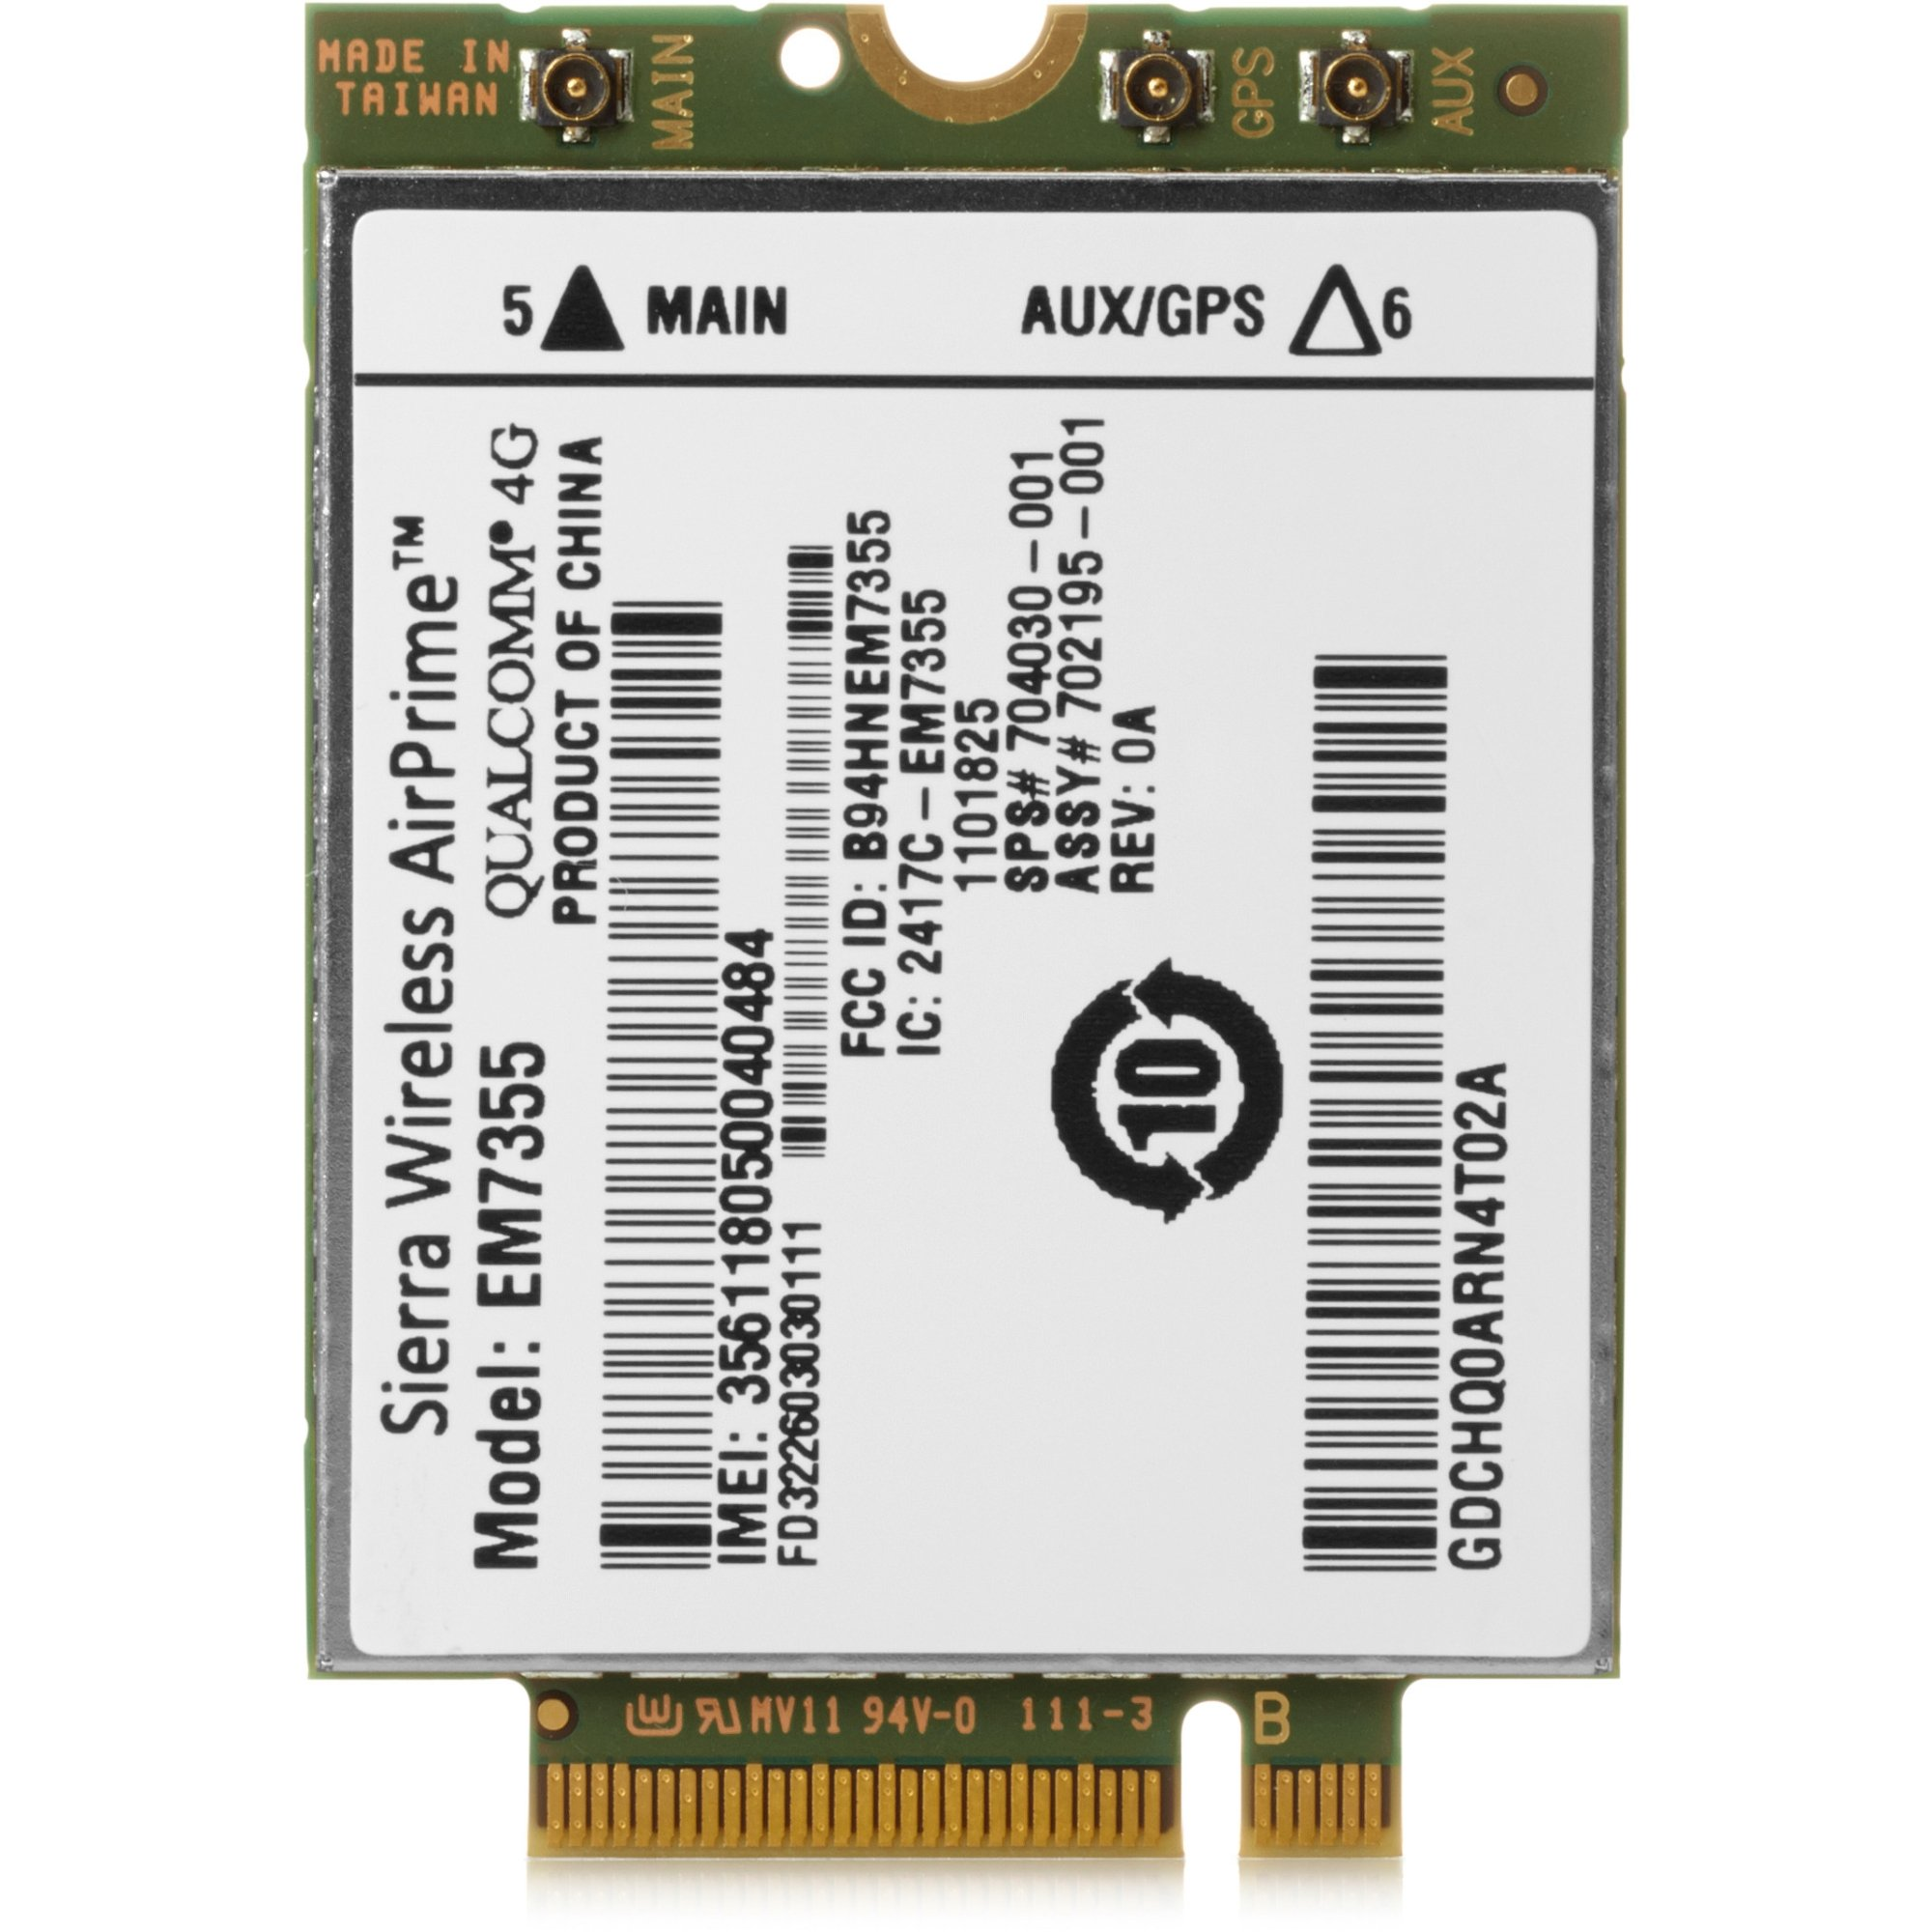 HP LT4111 E5M75AA 4G LTE Advanced WWAN 793116-001 746479-002 748021-001